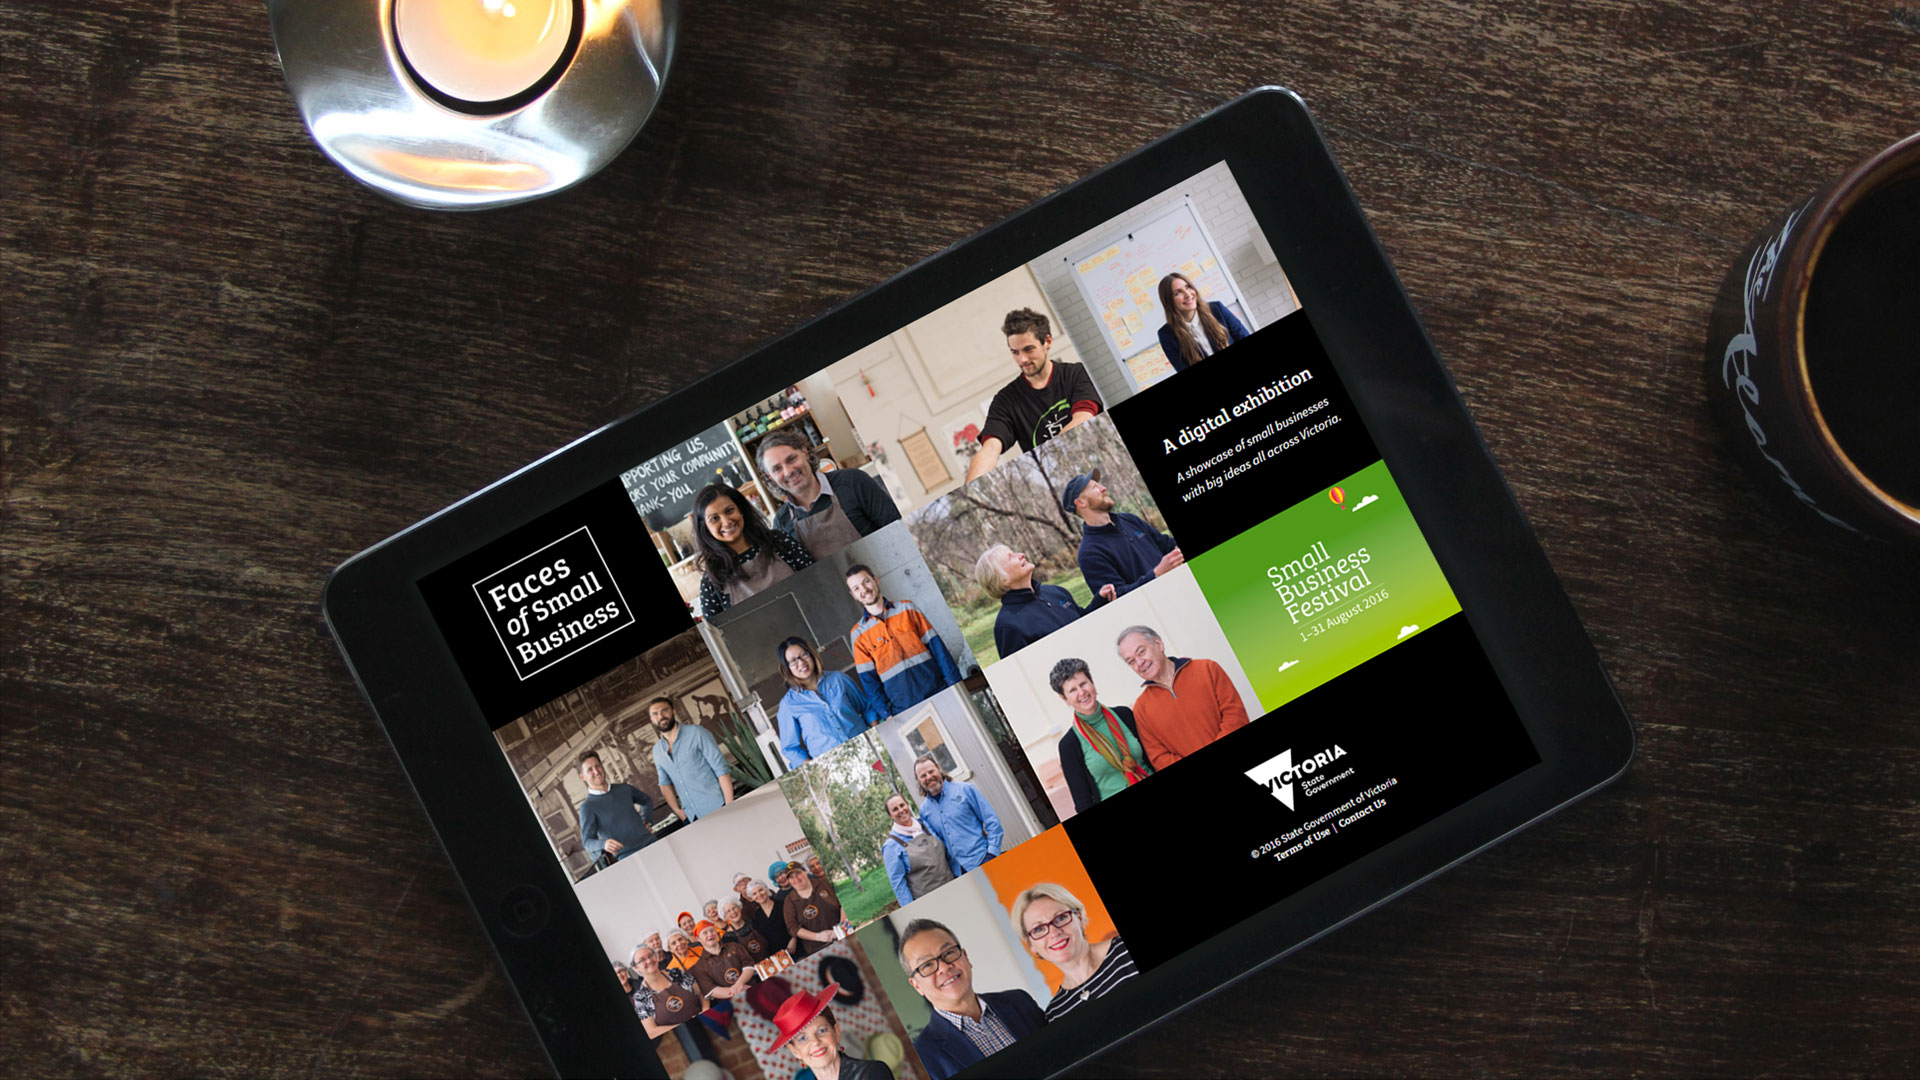 Faces of Small Business Tablet